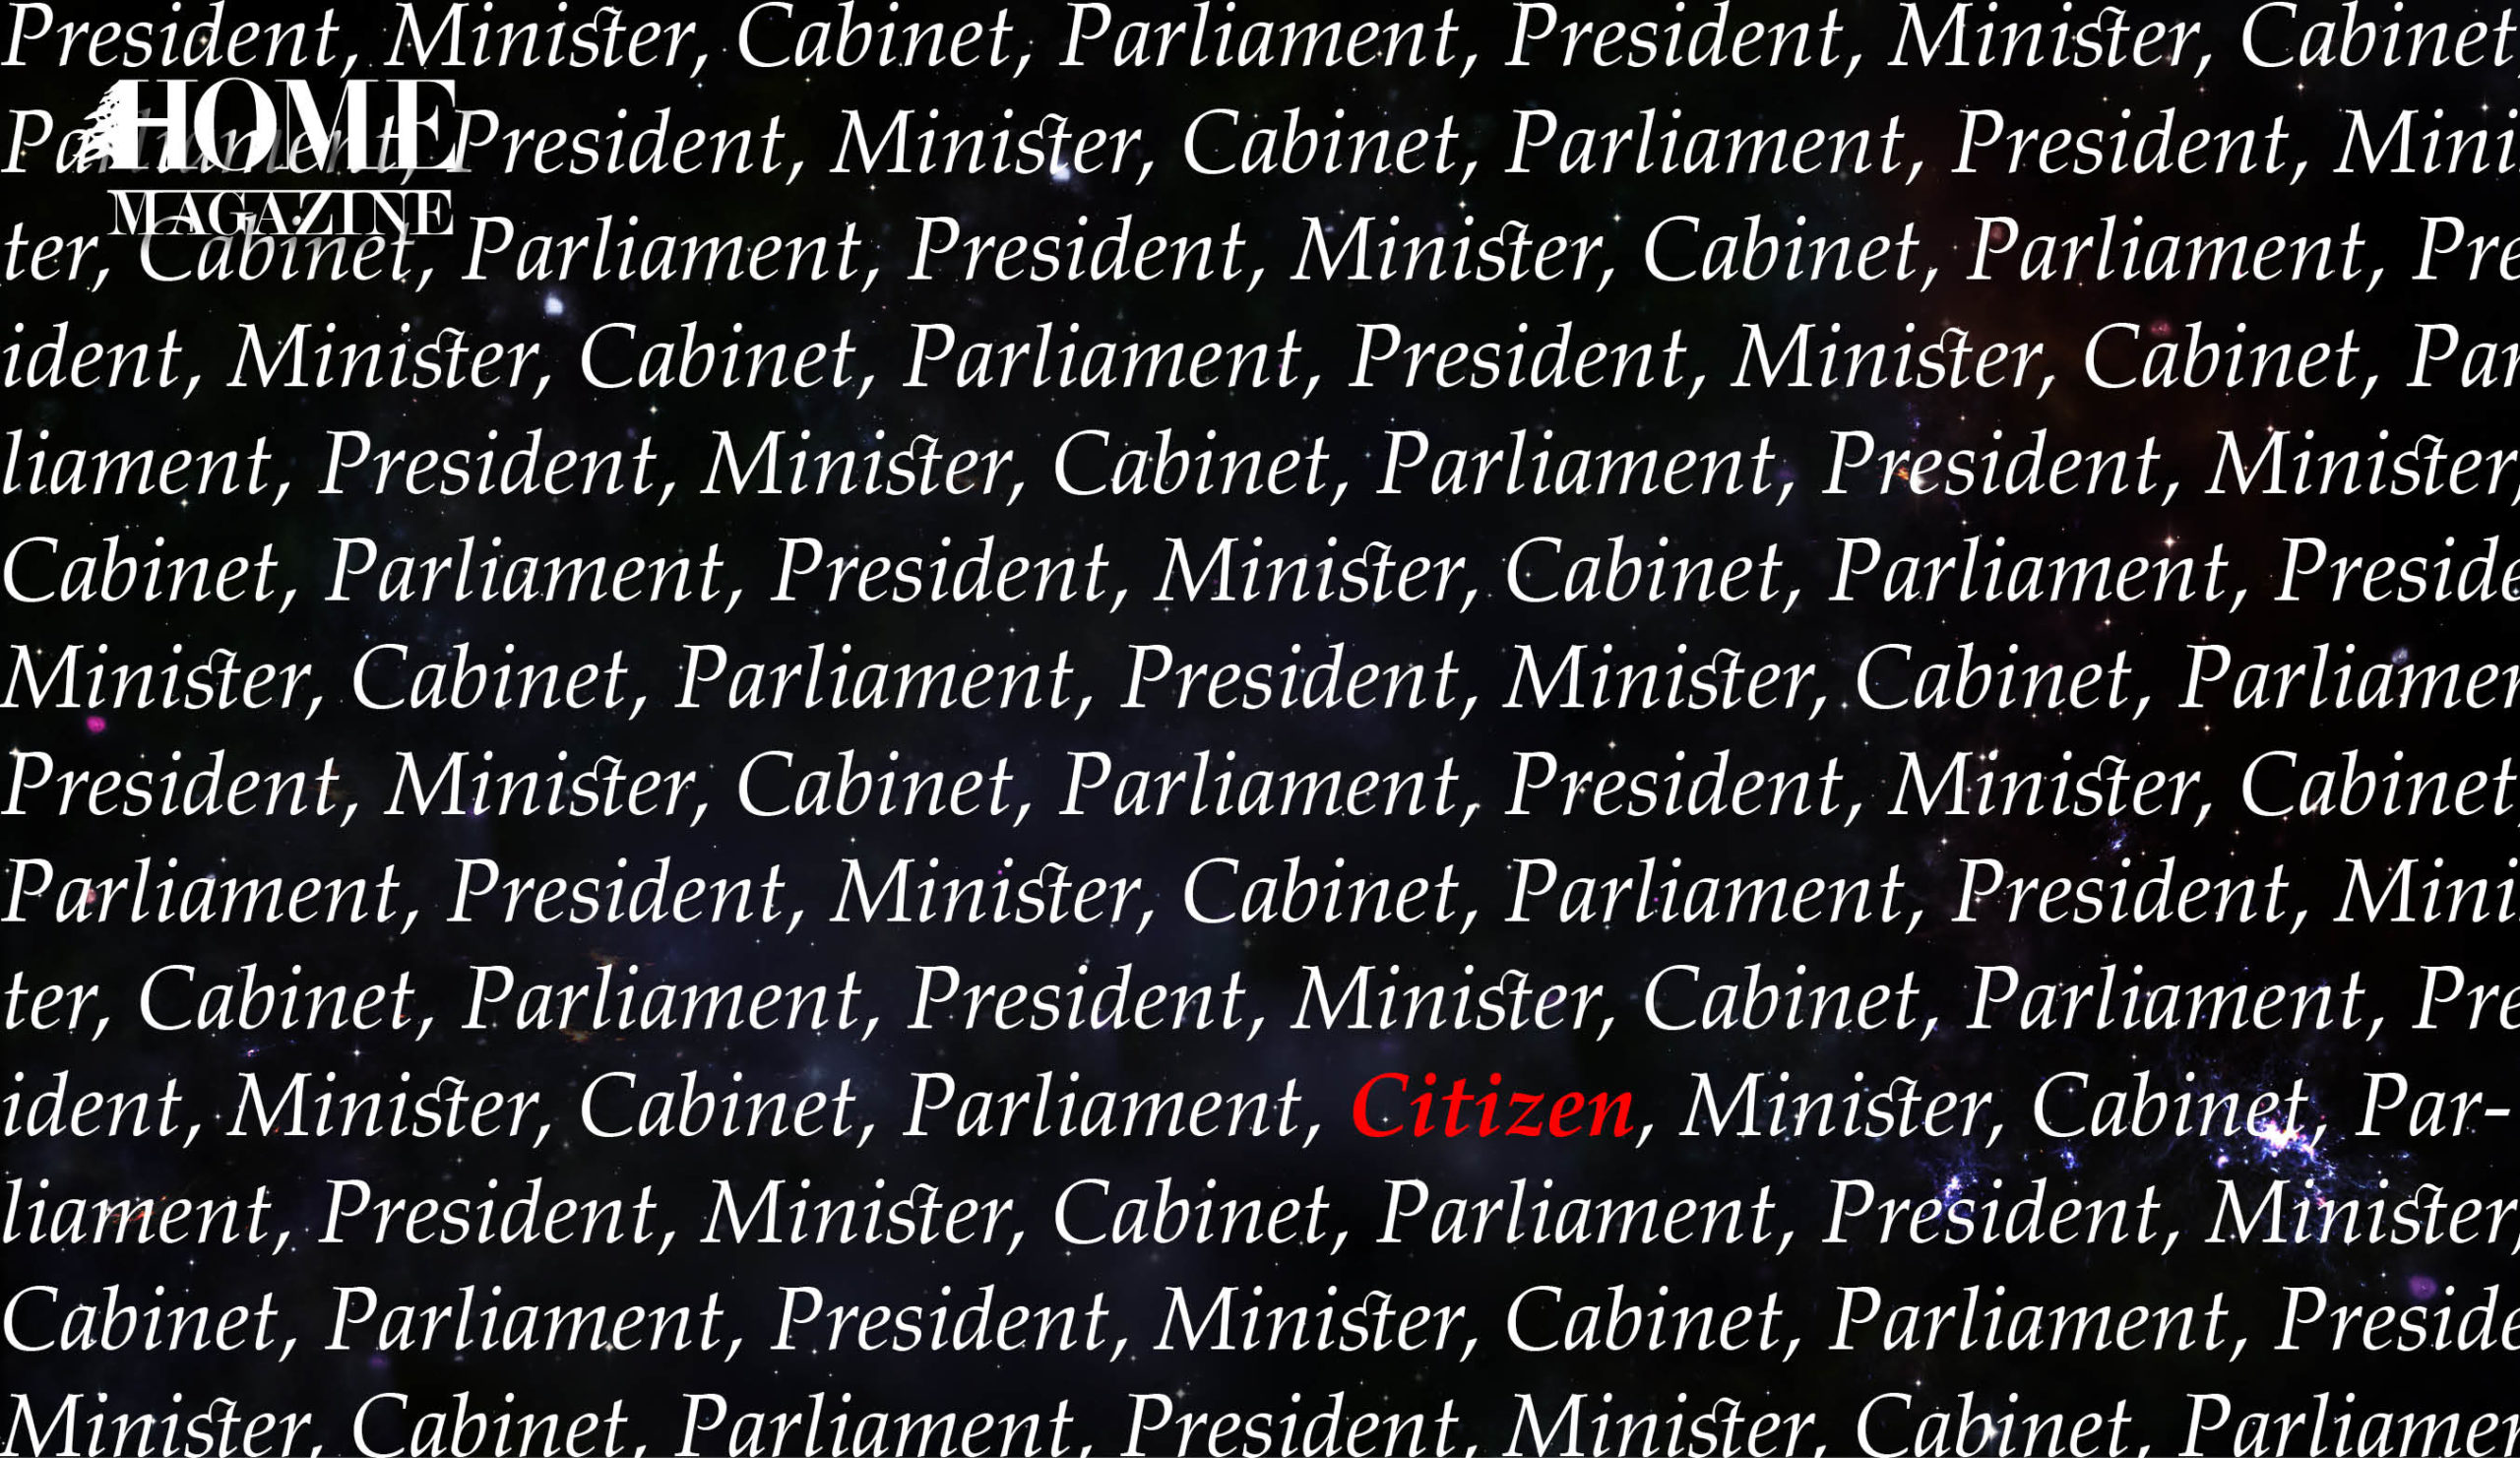 Is it true that in Lebanese Constitution the words president, minister and parliament are mentioned more than 260 times, whereas the word citizen is mentioned only ONCE?